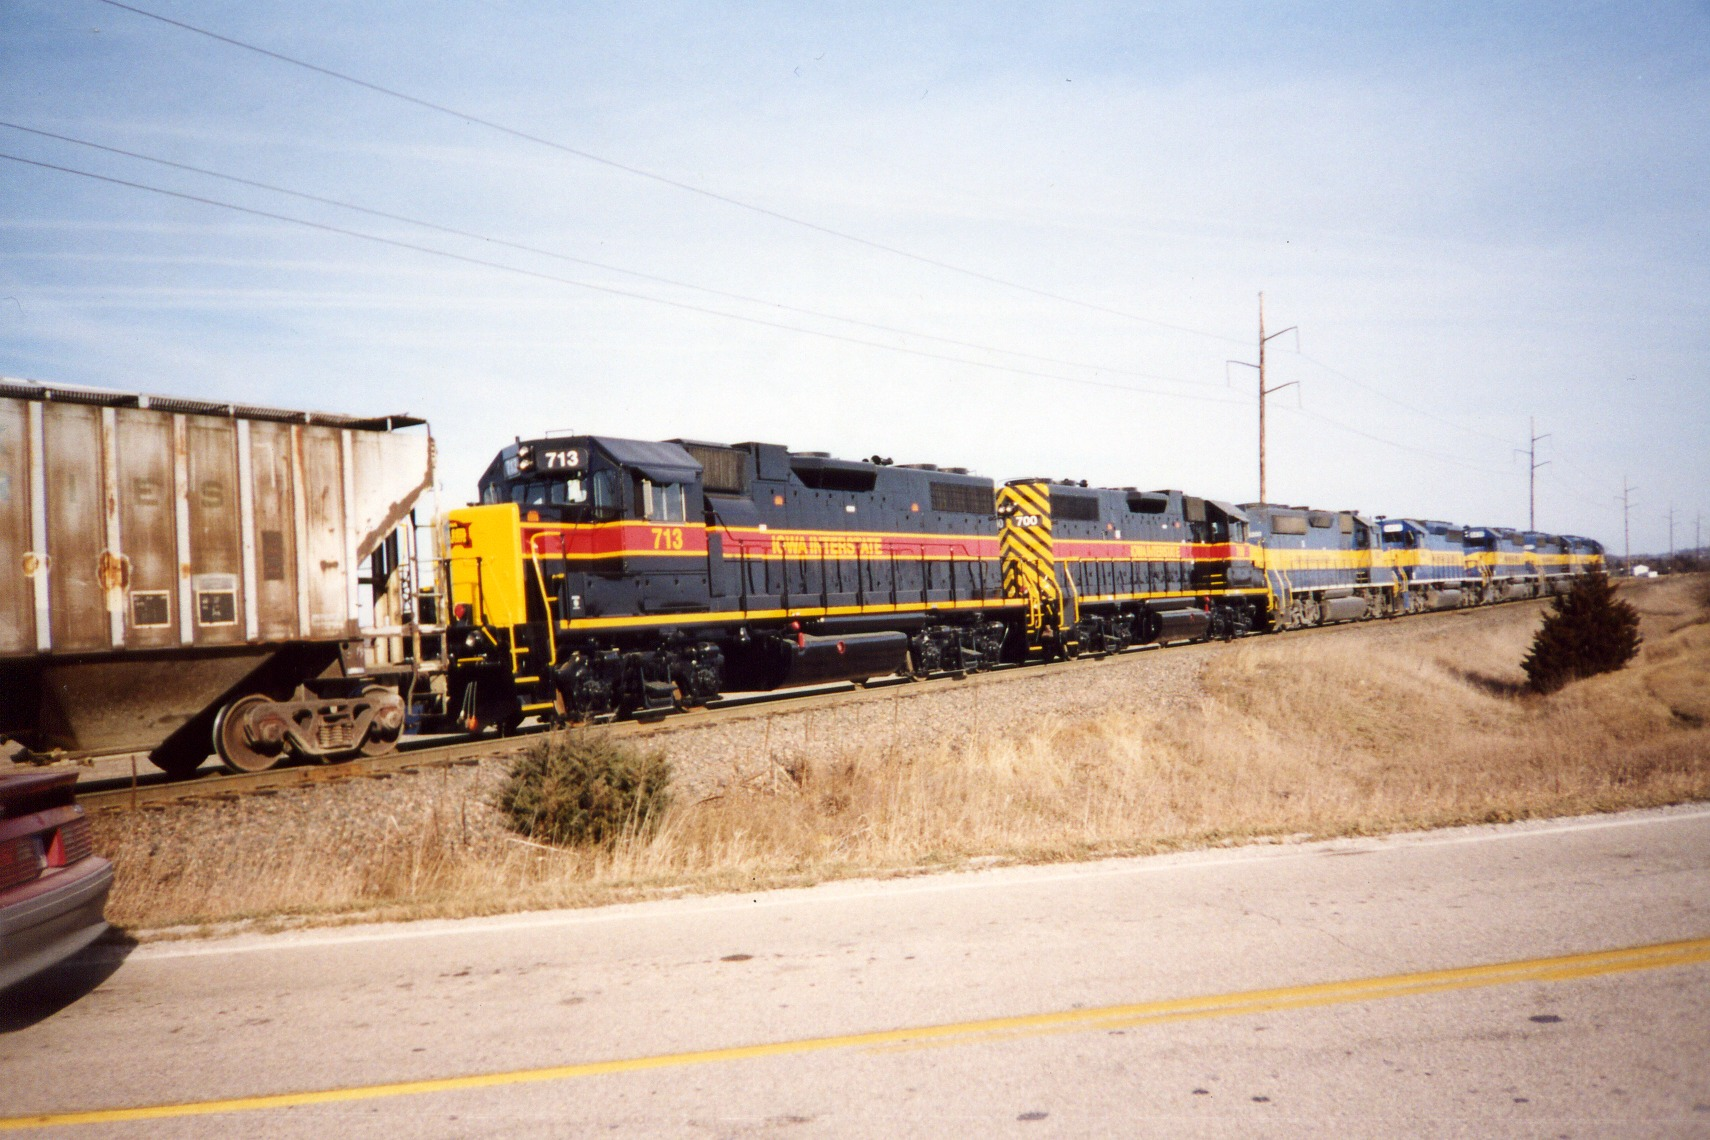 IAIS 700/713 on IC&E at Muscatine, en route to delivery to IAIS at Davenport